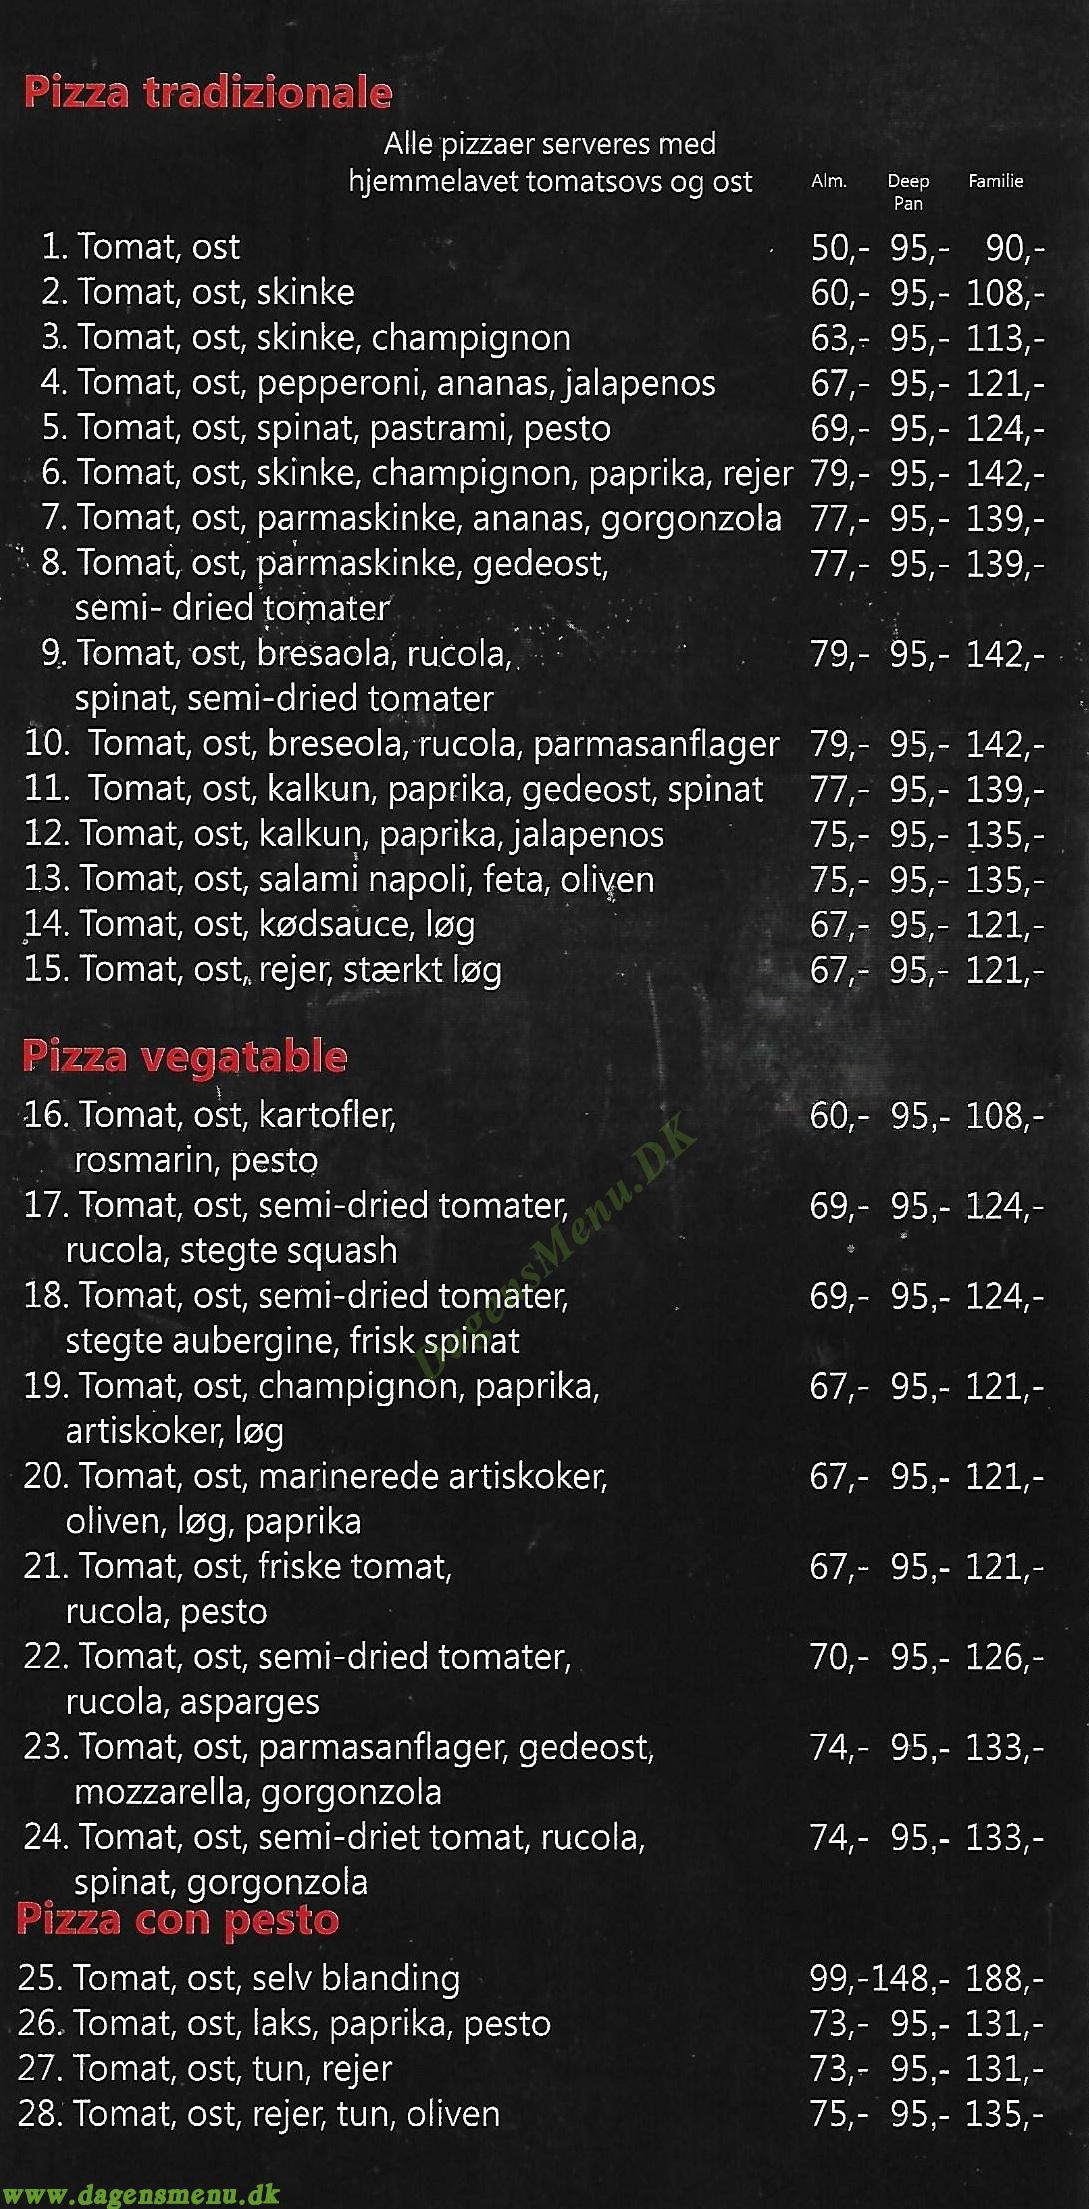 Utterslev Pizzaria - Menukort